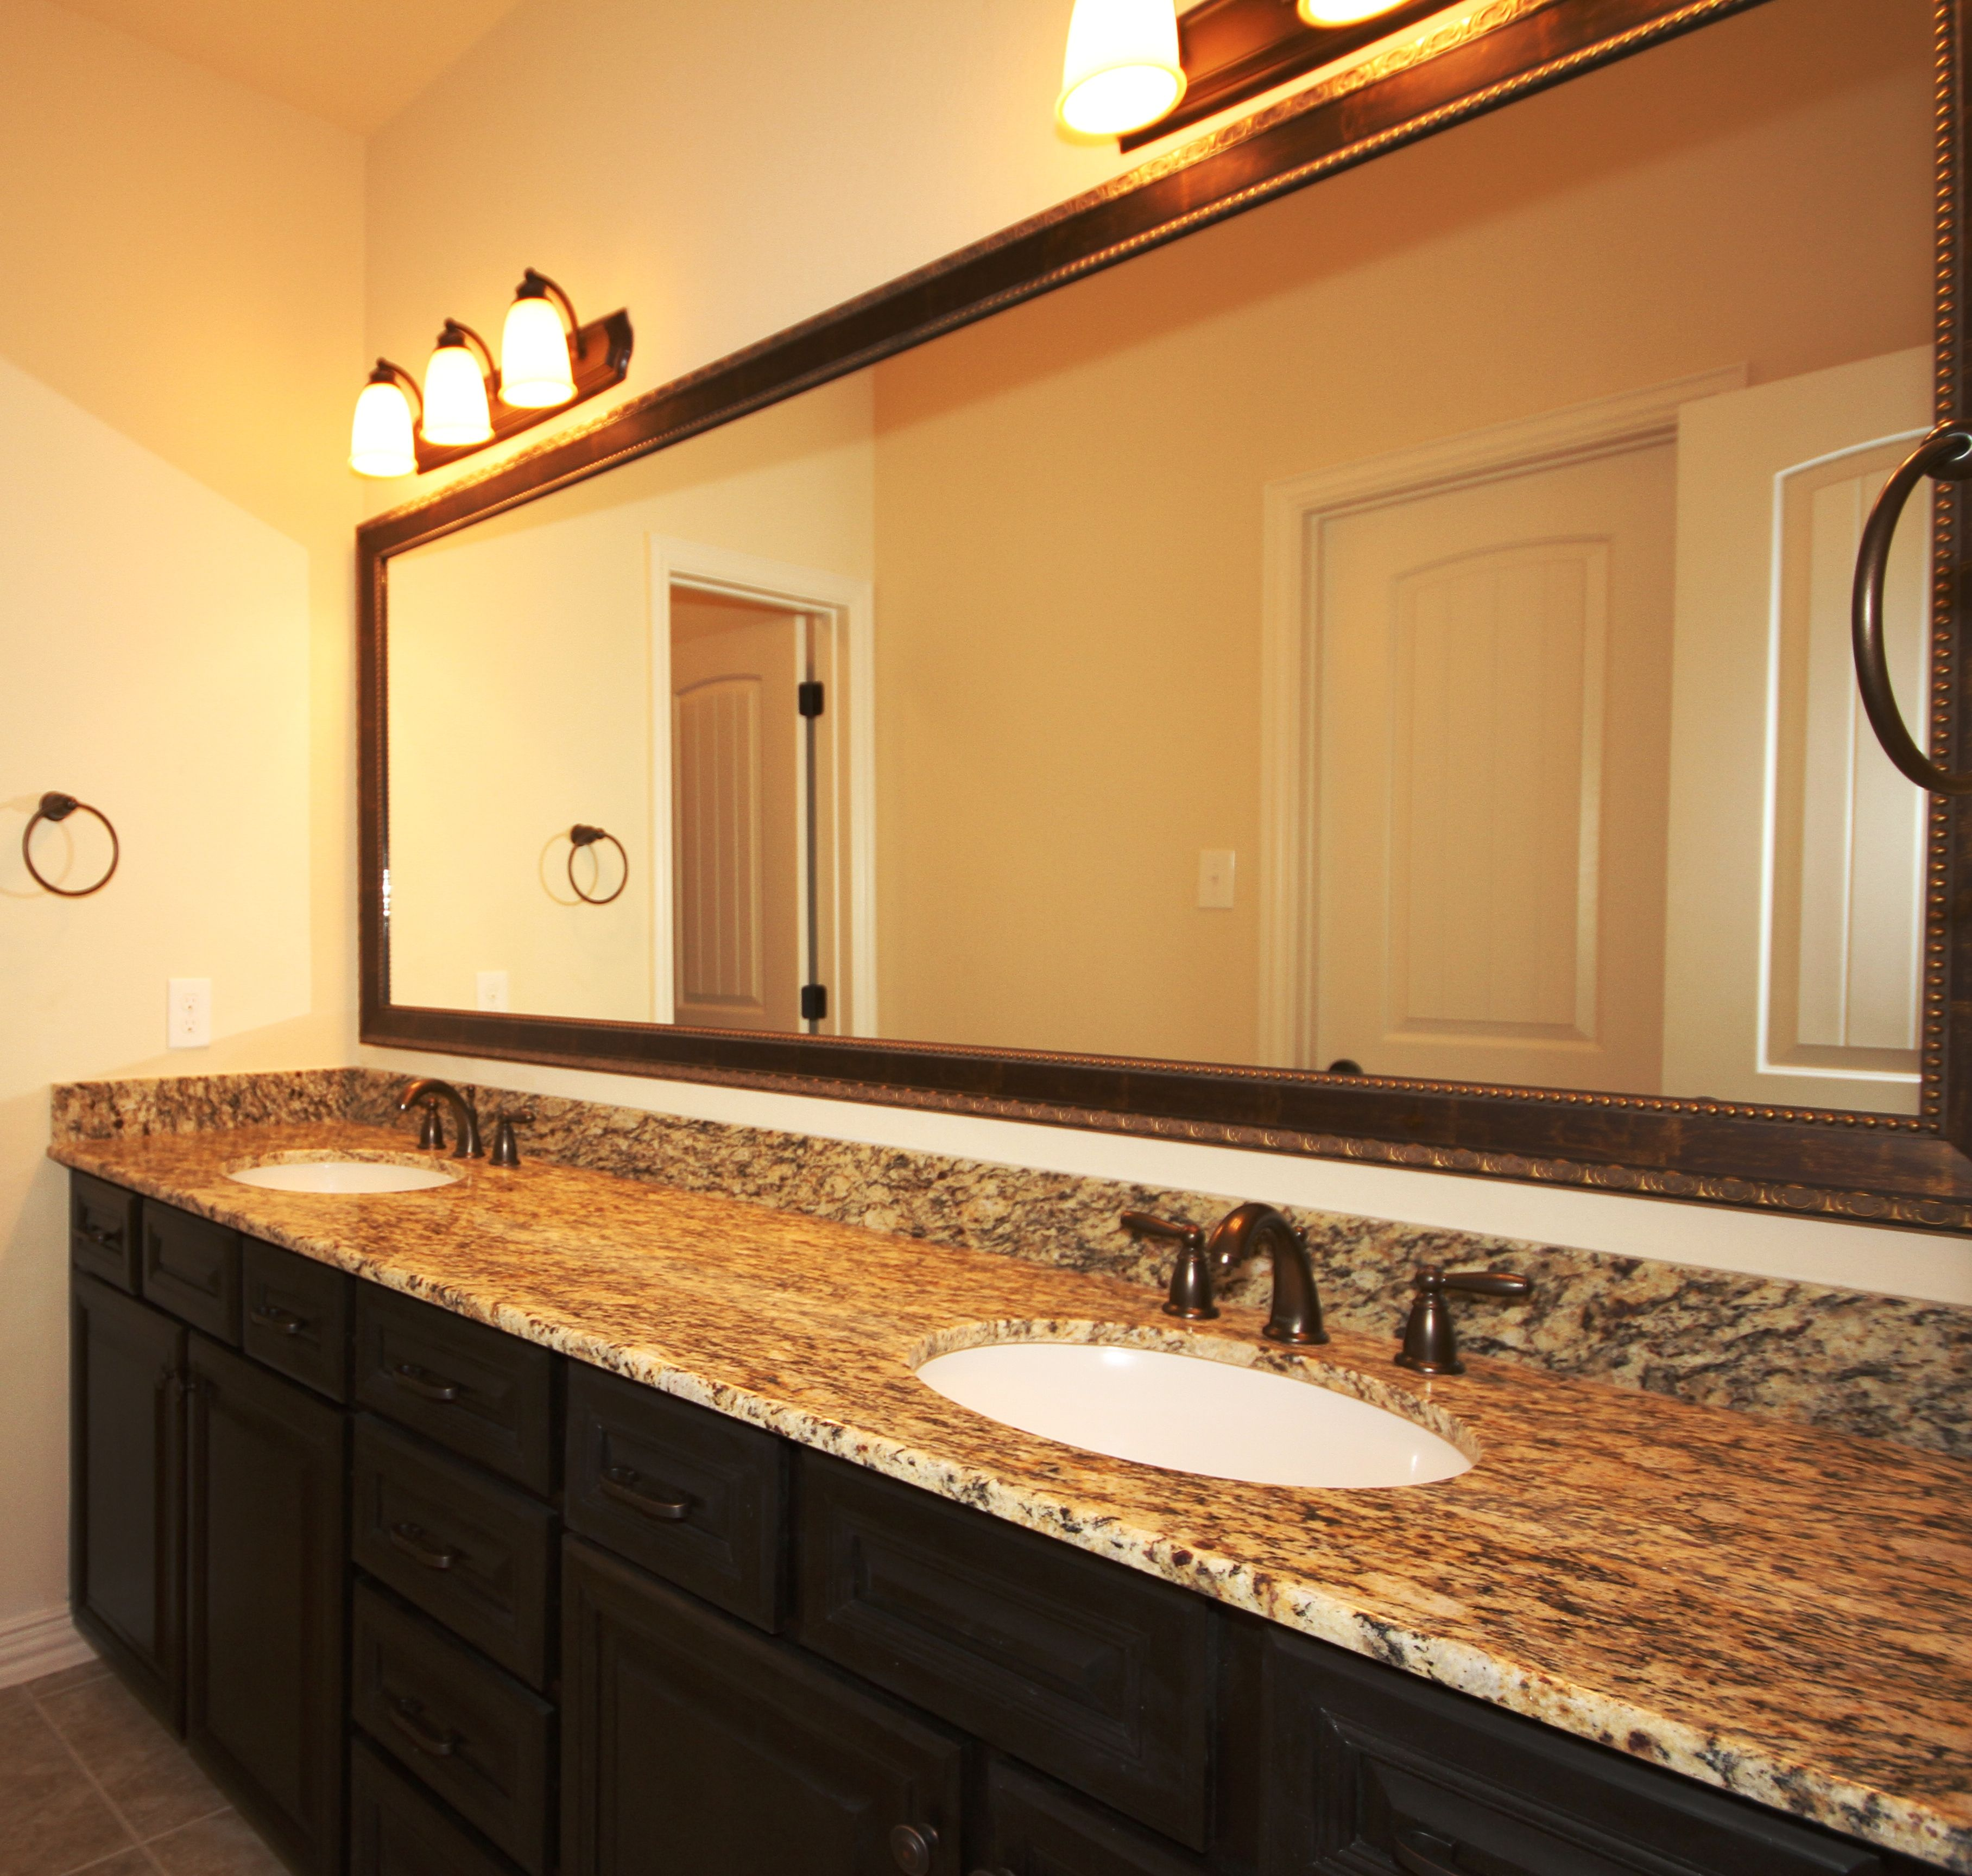 size oil small wall oval full mirrors lights bulbs of double bronze rubbed vanity toilet with lig ideas transitional light makeup mirror shaving framed mounted bathroom malaysia polished